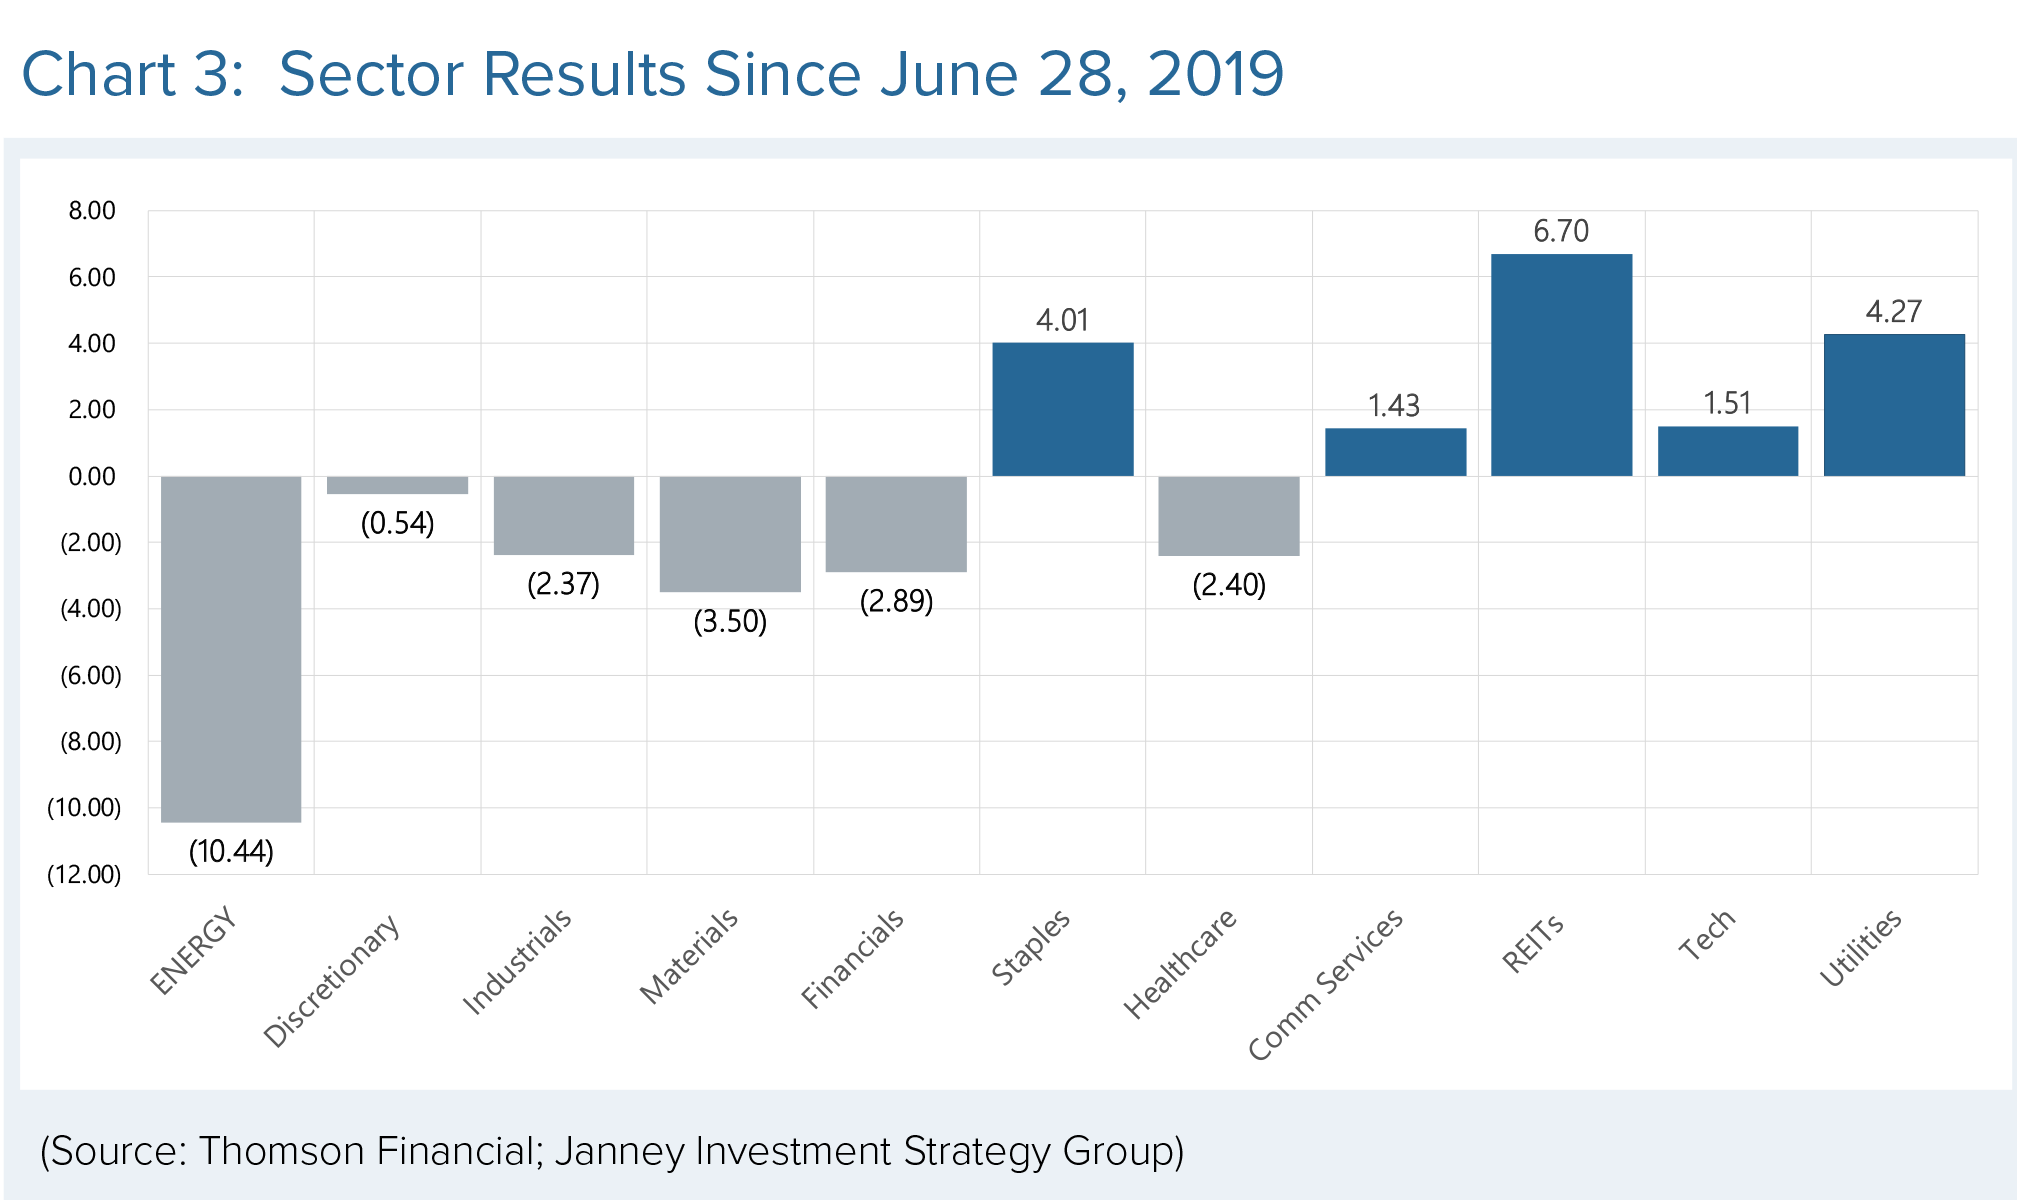 Sector results since June 28, 2019